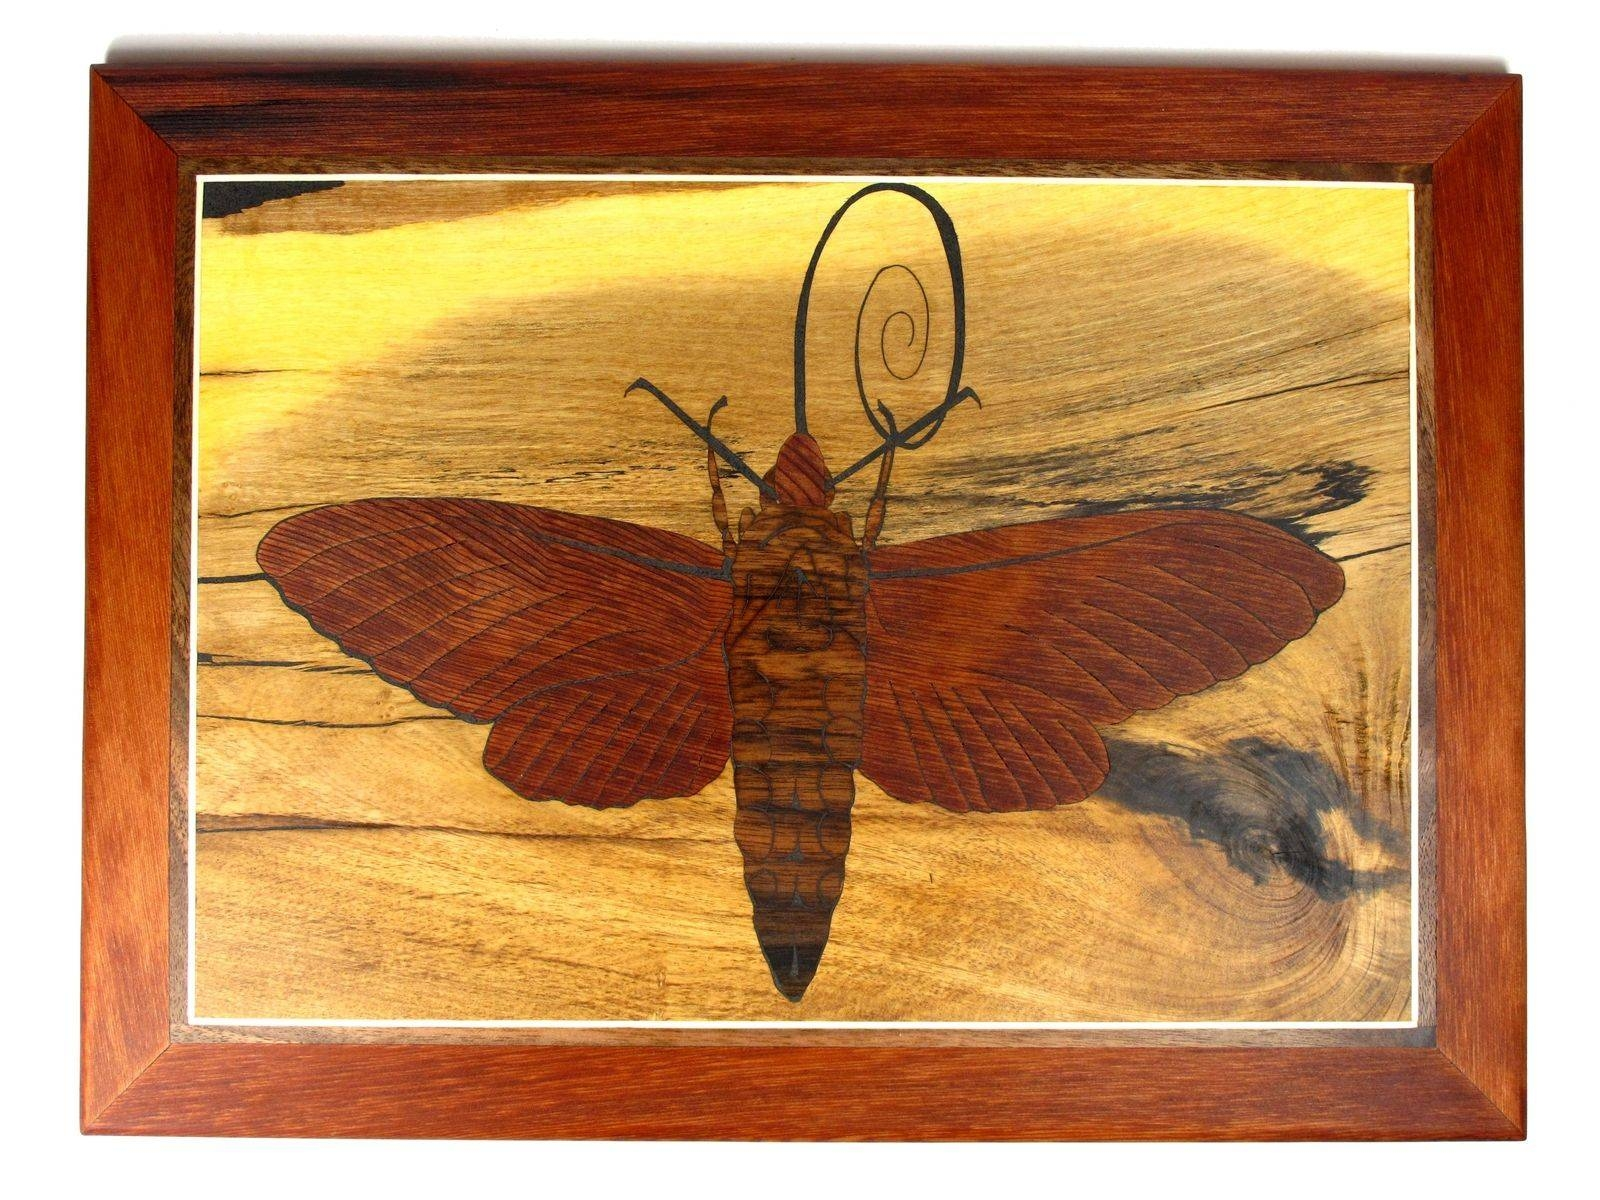 Hand Made Insect Wall Art In Reclaimed Woodsierra Woodcraft Pertaining To Most Recent Insect Wall Art (View 12 of 30)